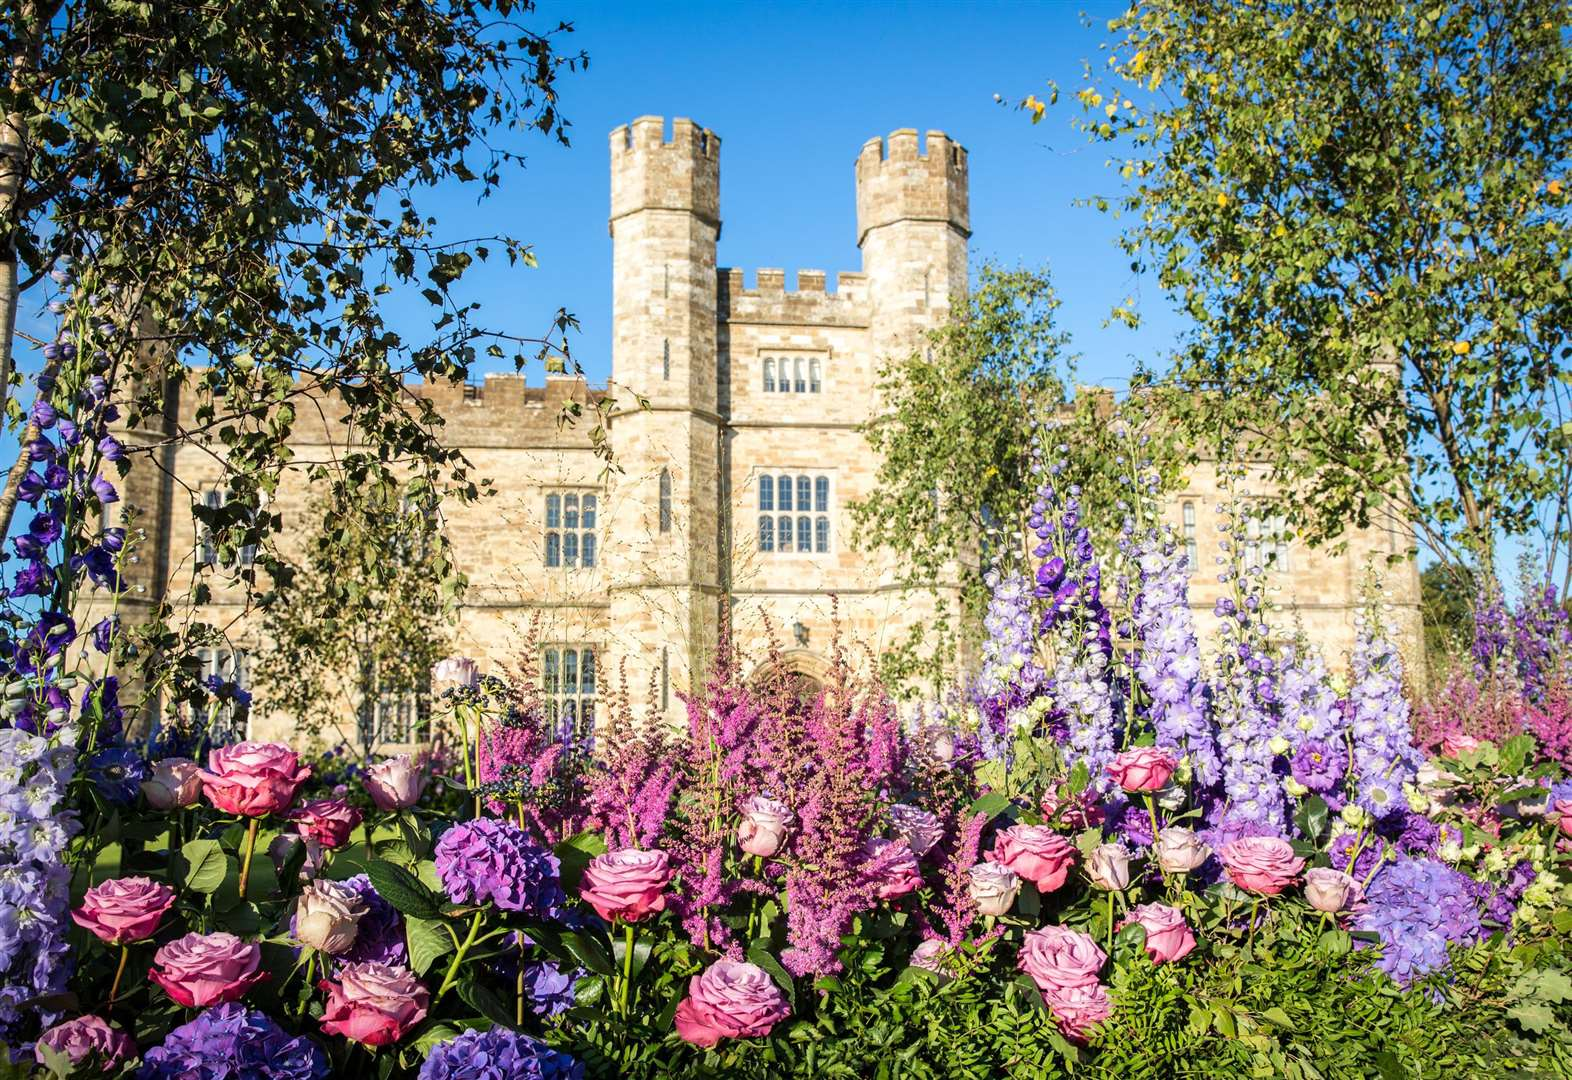 Leeds Castle's Festival of Flowers comes in to bloom